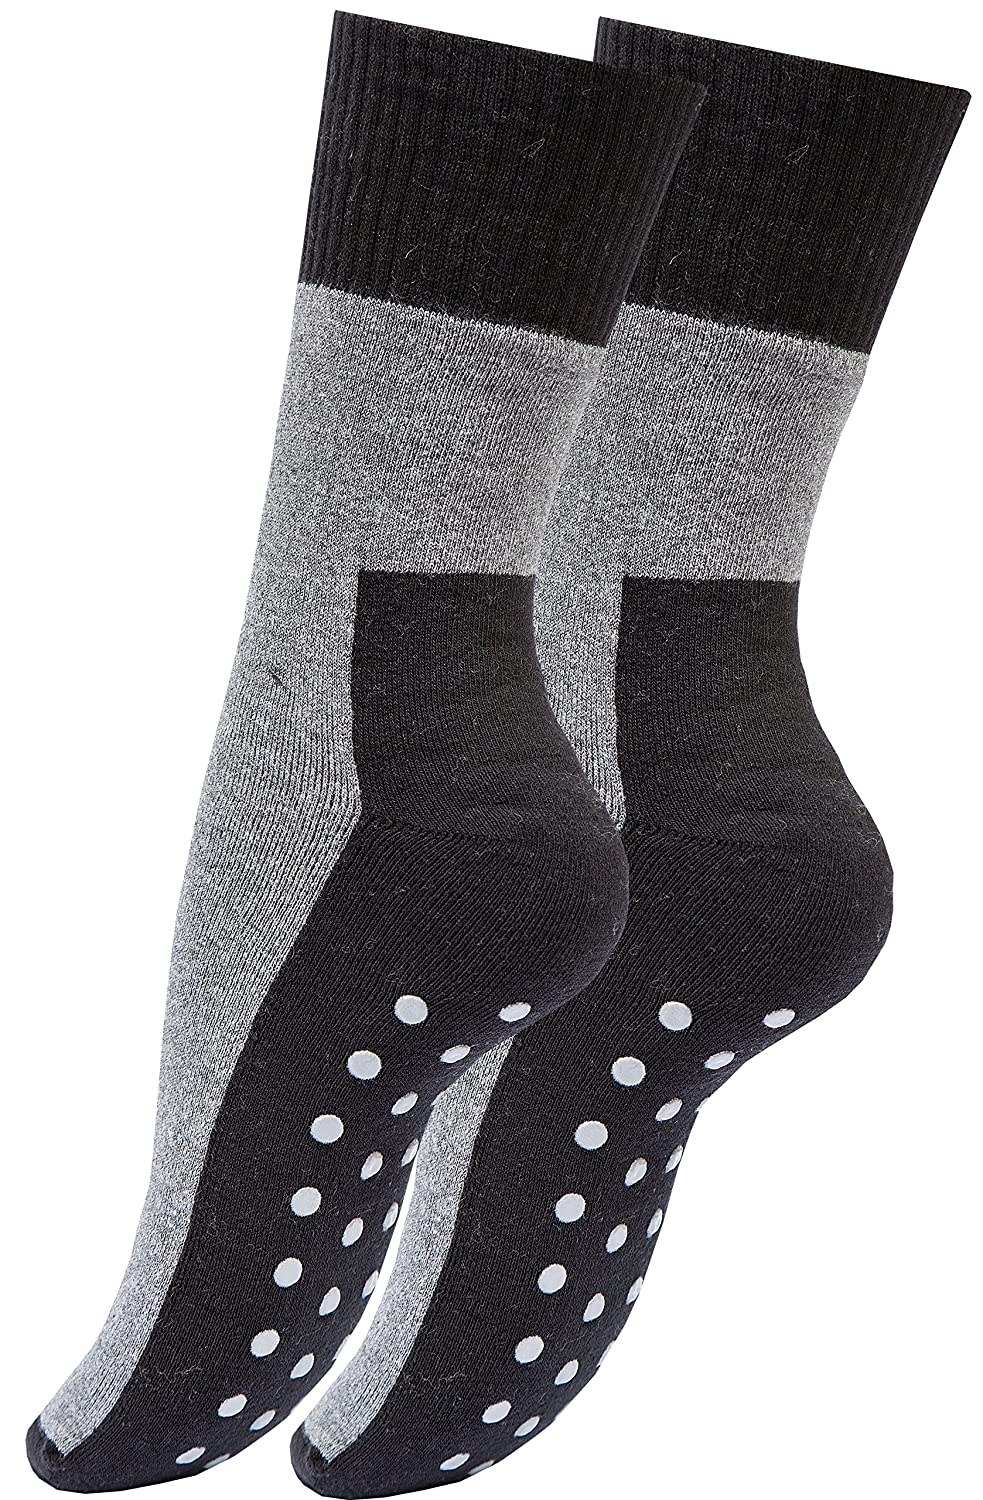 Vincent Creation 2, 4 oder 6 Paar ABS Socken Vollplüsch, Anti Rutsch Socken Stoppersocken Bi-Color Schwarz/Grau 2097 Unisex